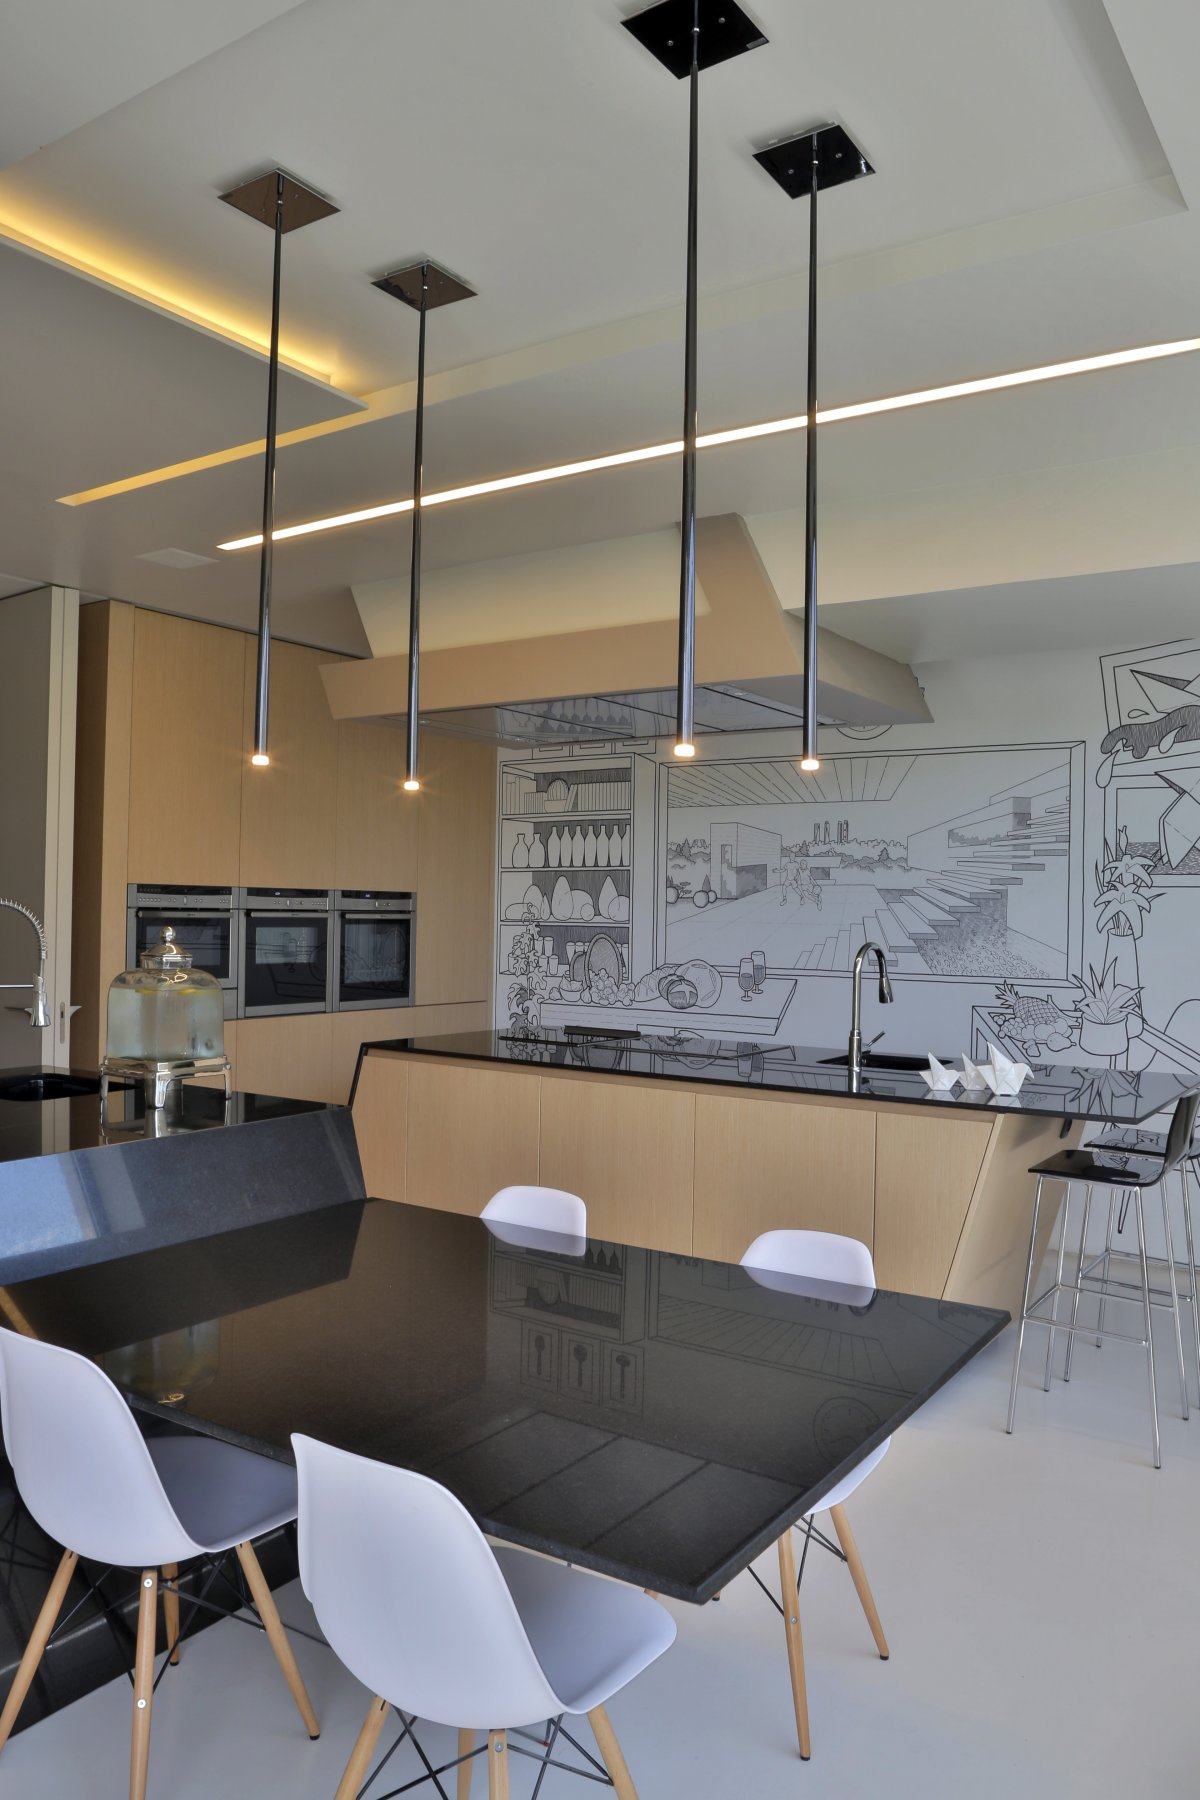 Modern Kitchen, Lighting, Breakfast Table, Futuristic Home in Madrid, Spain